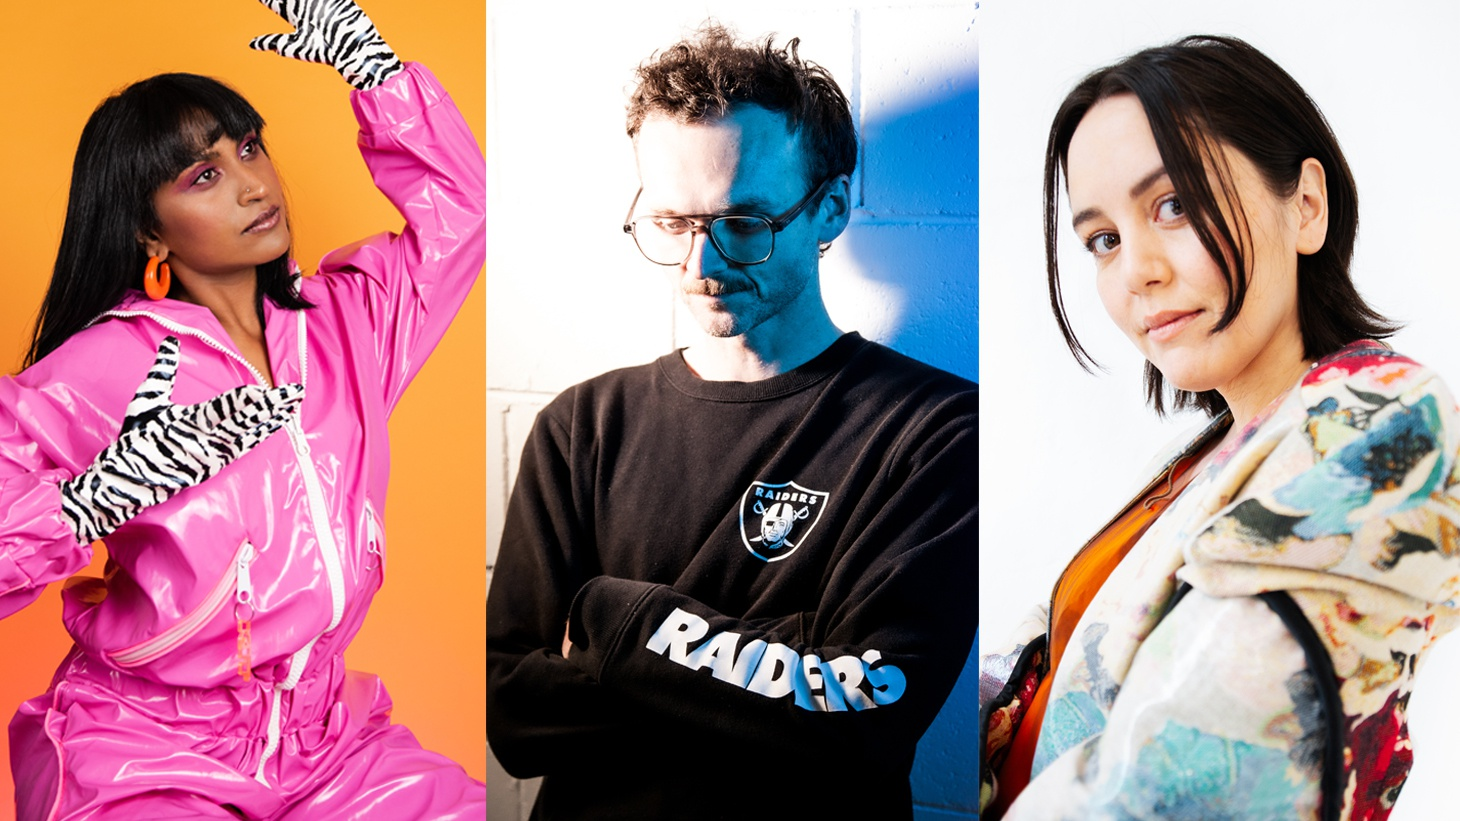 This week's Global Beat features the Australian sounds of CLYPSO, upsidedownhead, and Logic1000.